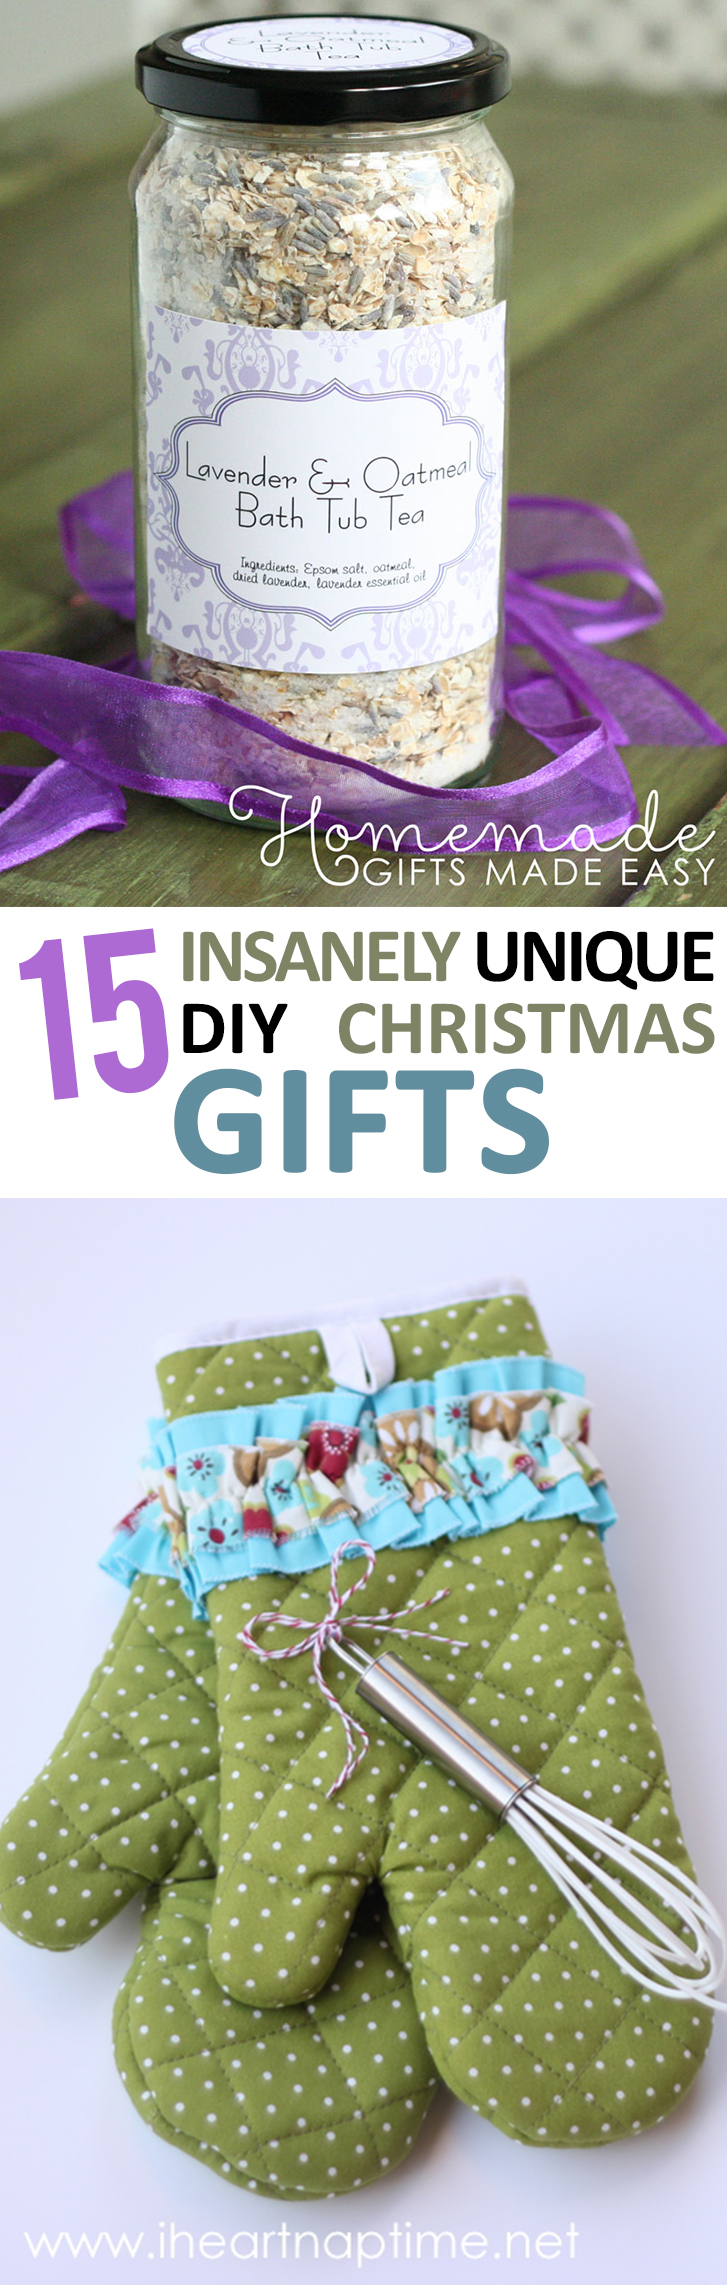 15 insanely unique diy christmas gifts page 17 of 17 for Unique ideas for christmas gifts